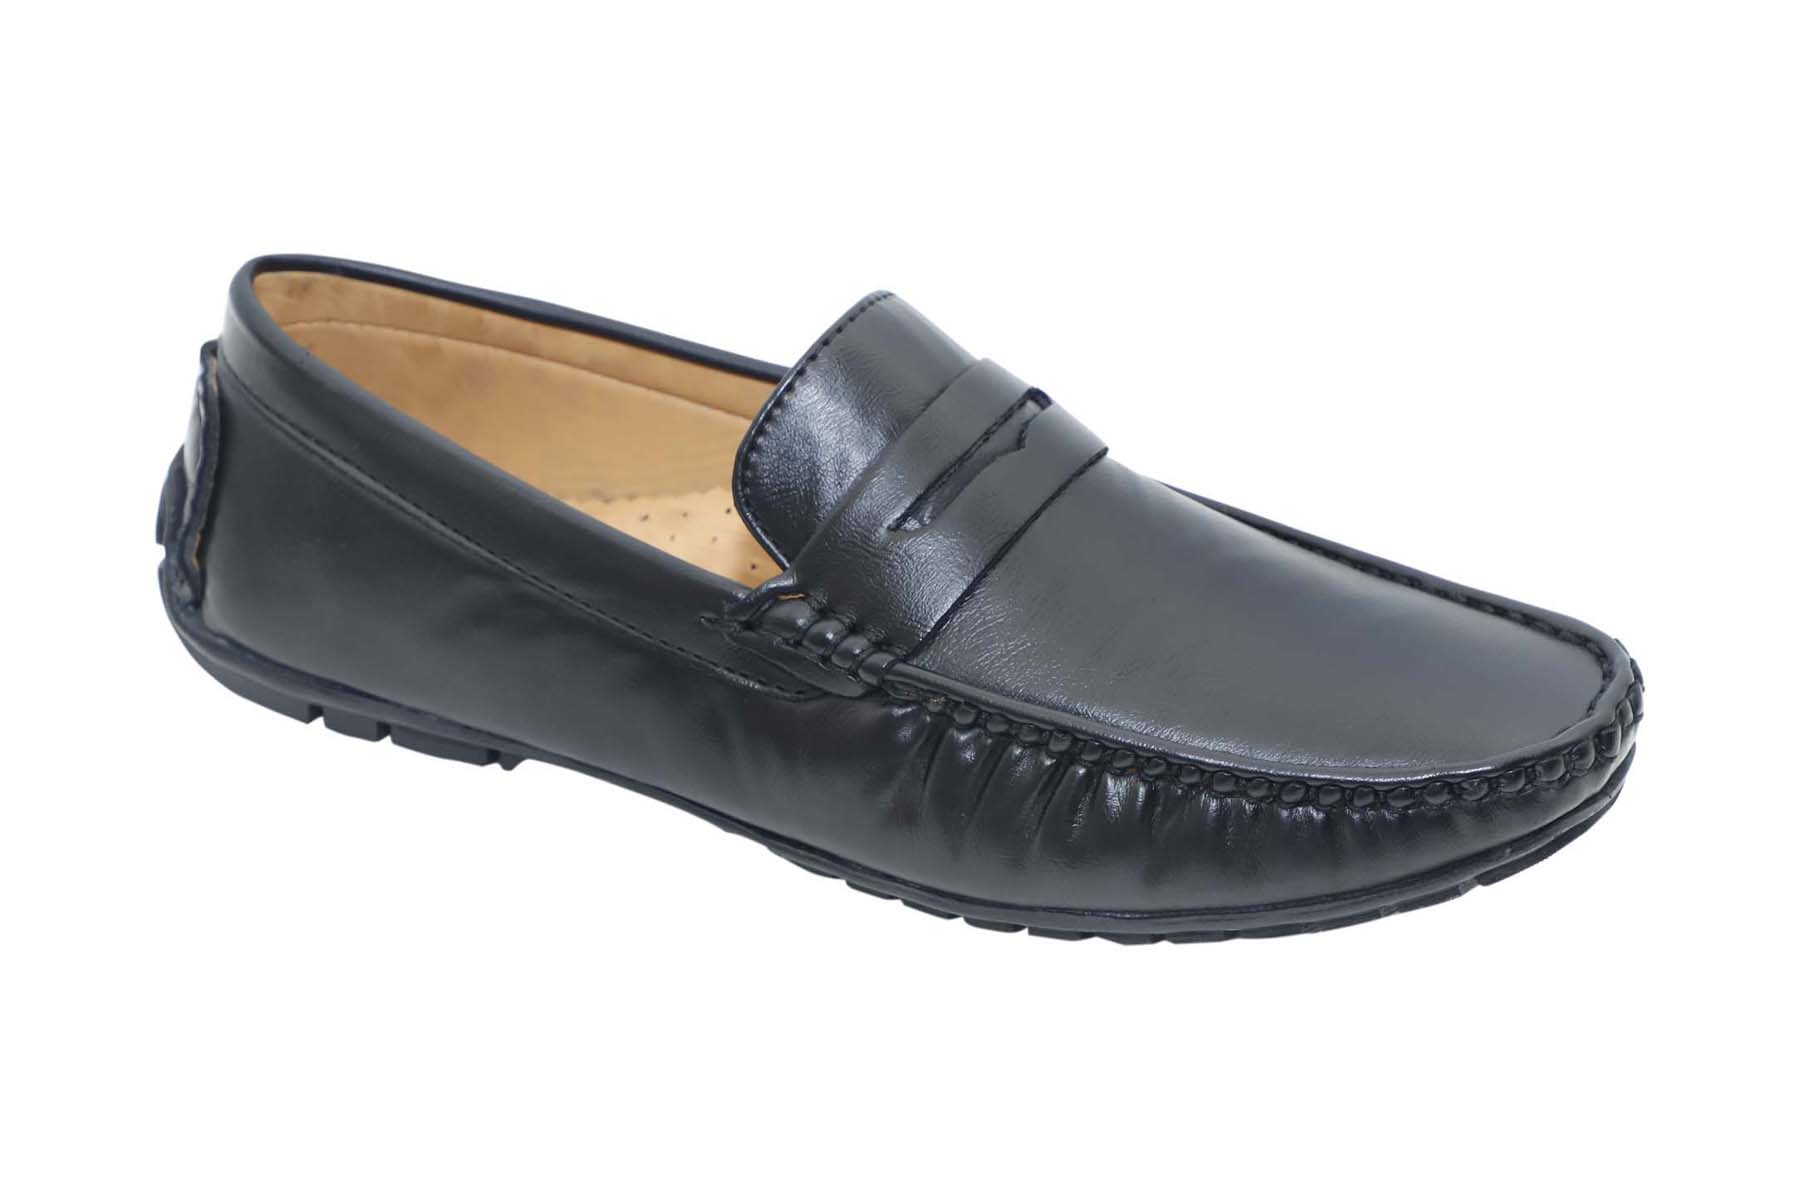 DRIVING102-BLACK MEN'S FORMAL SHOES